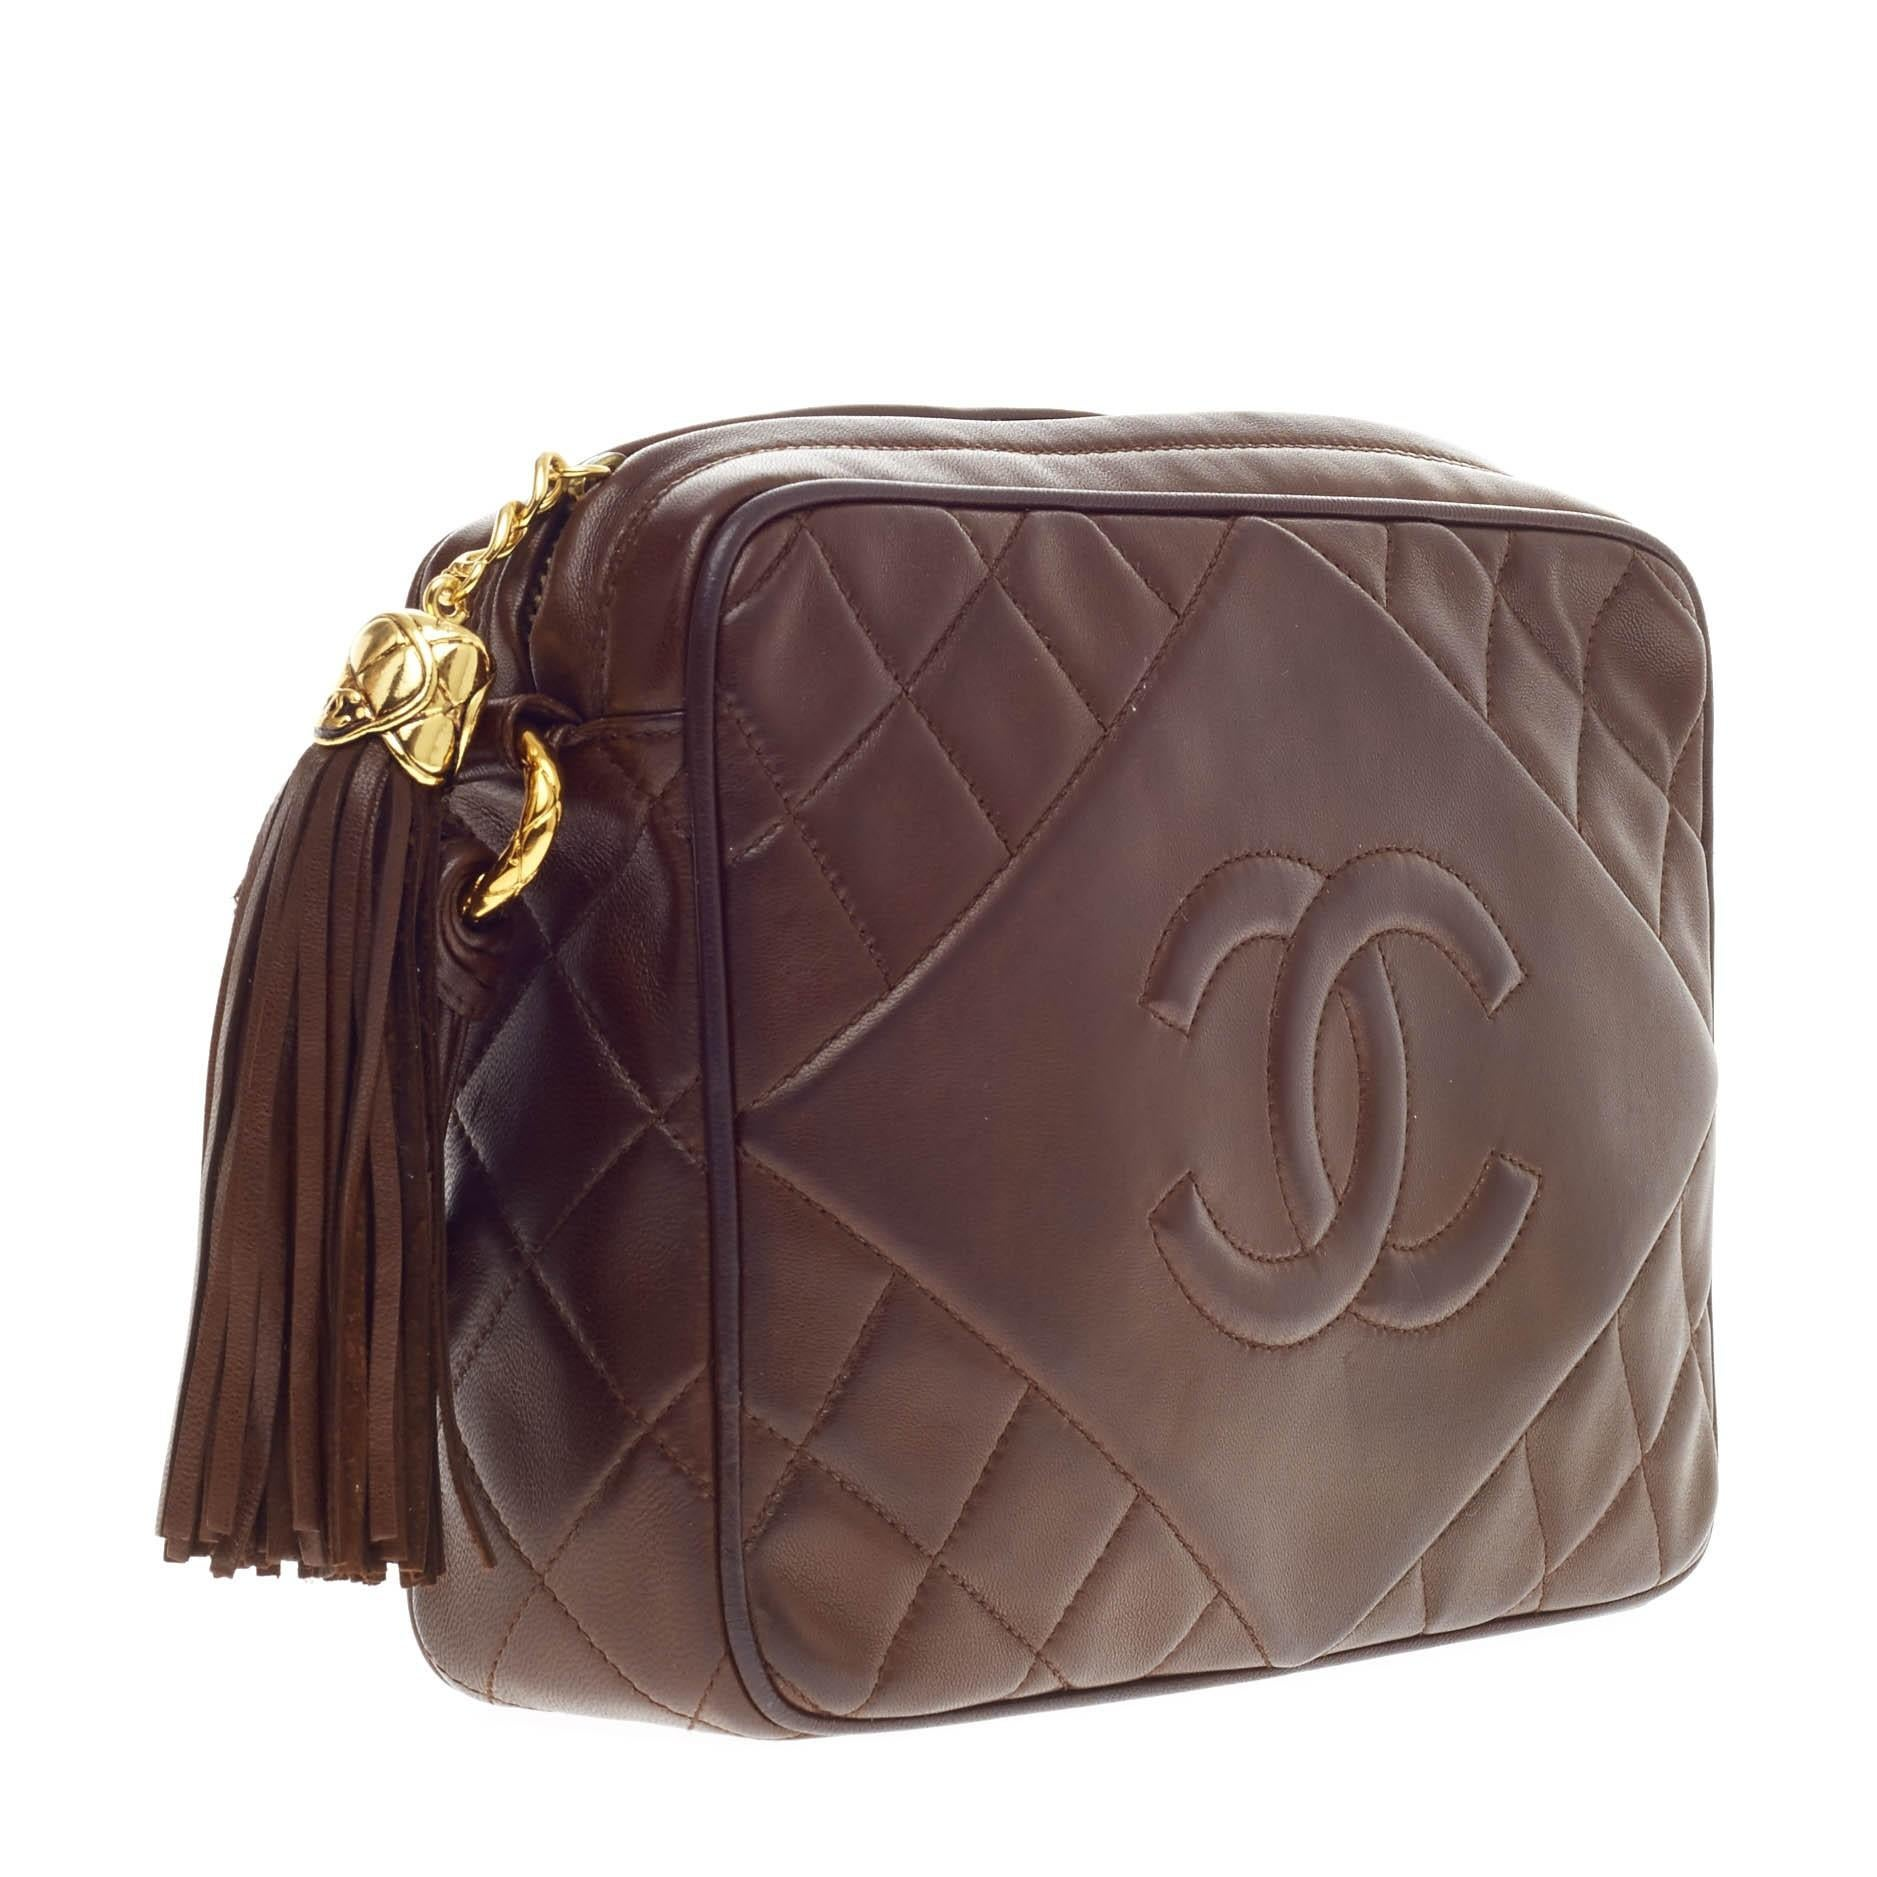 cef6403099ae Chanel Vintage Diamond CC Camera Bag Quilted Leather Medium at 1stdibs